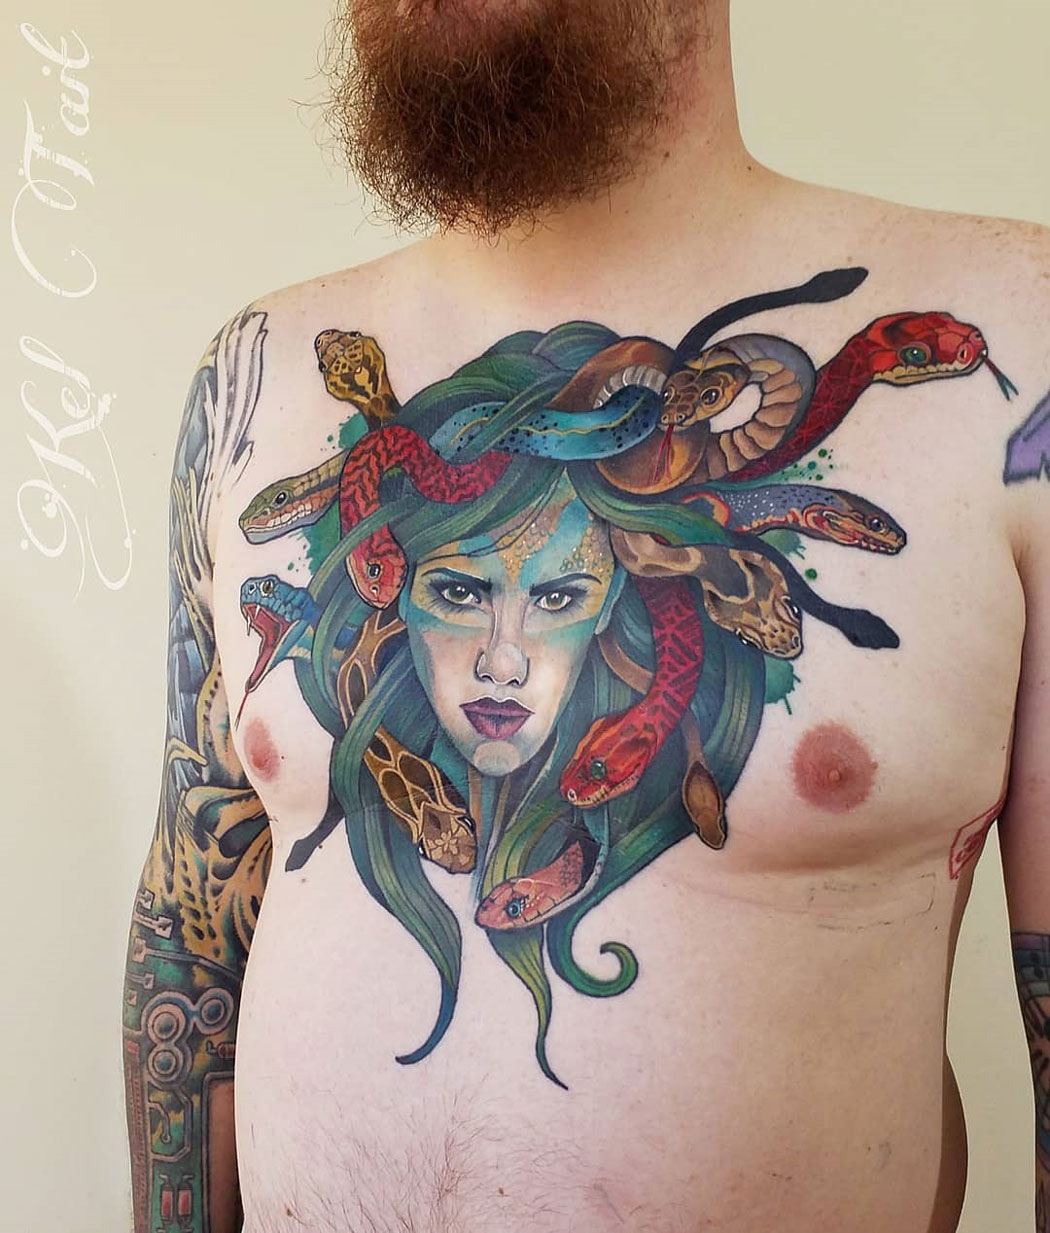 Medusa men's chest tattoo